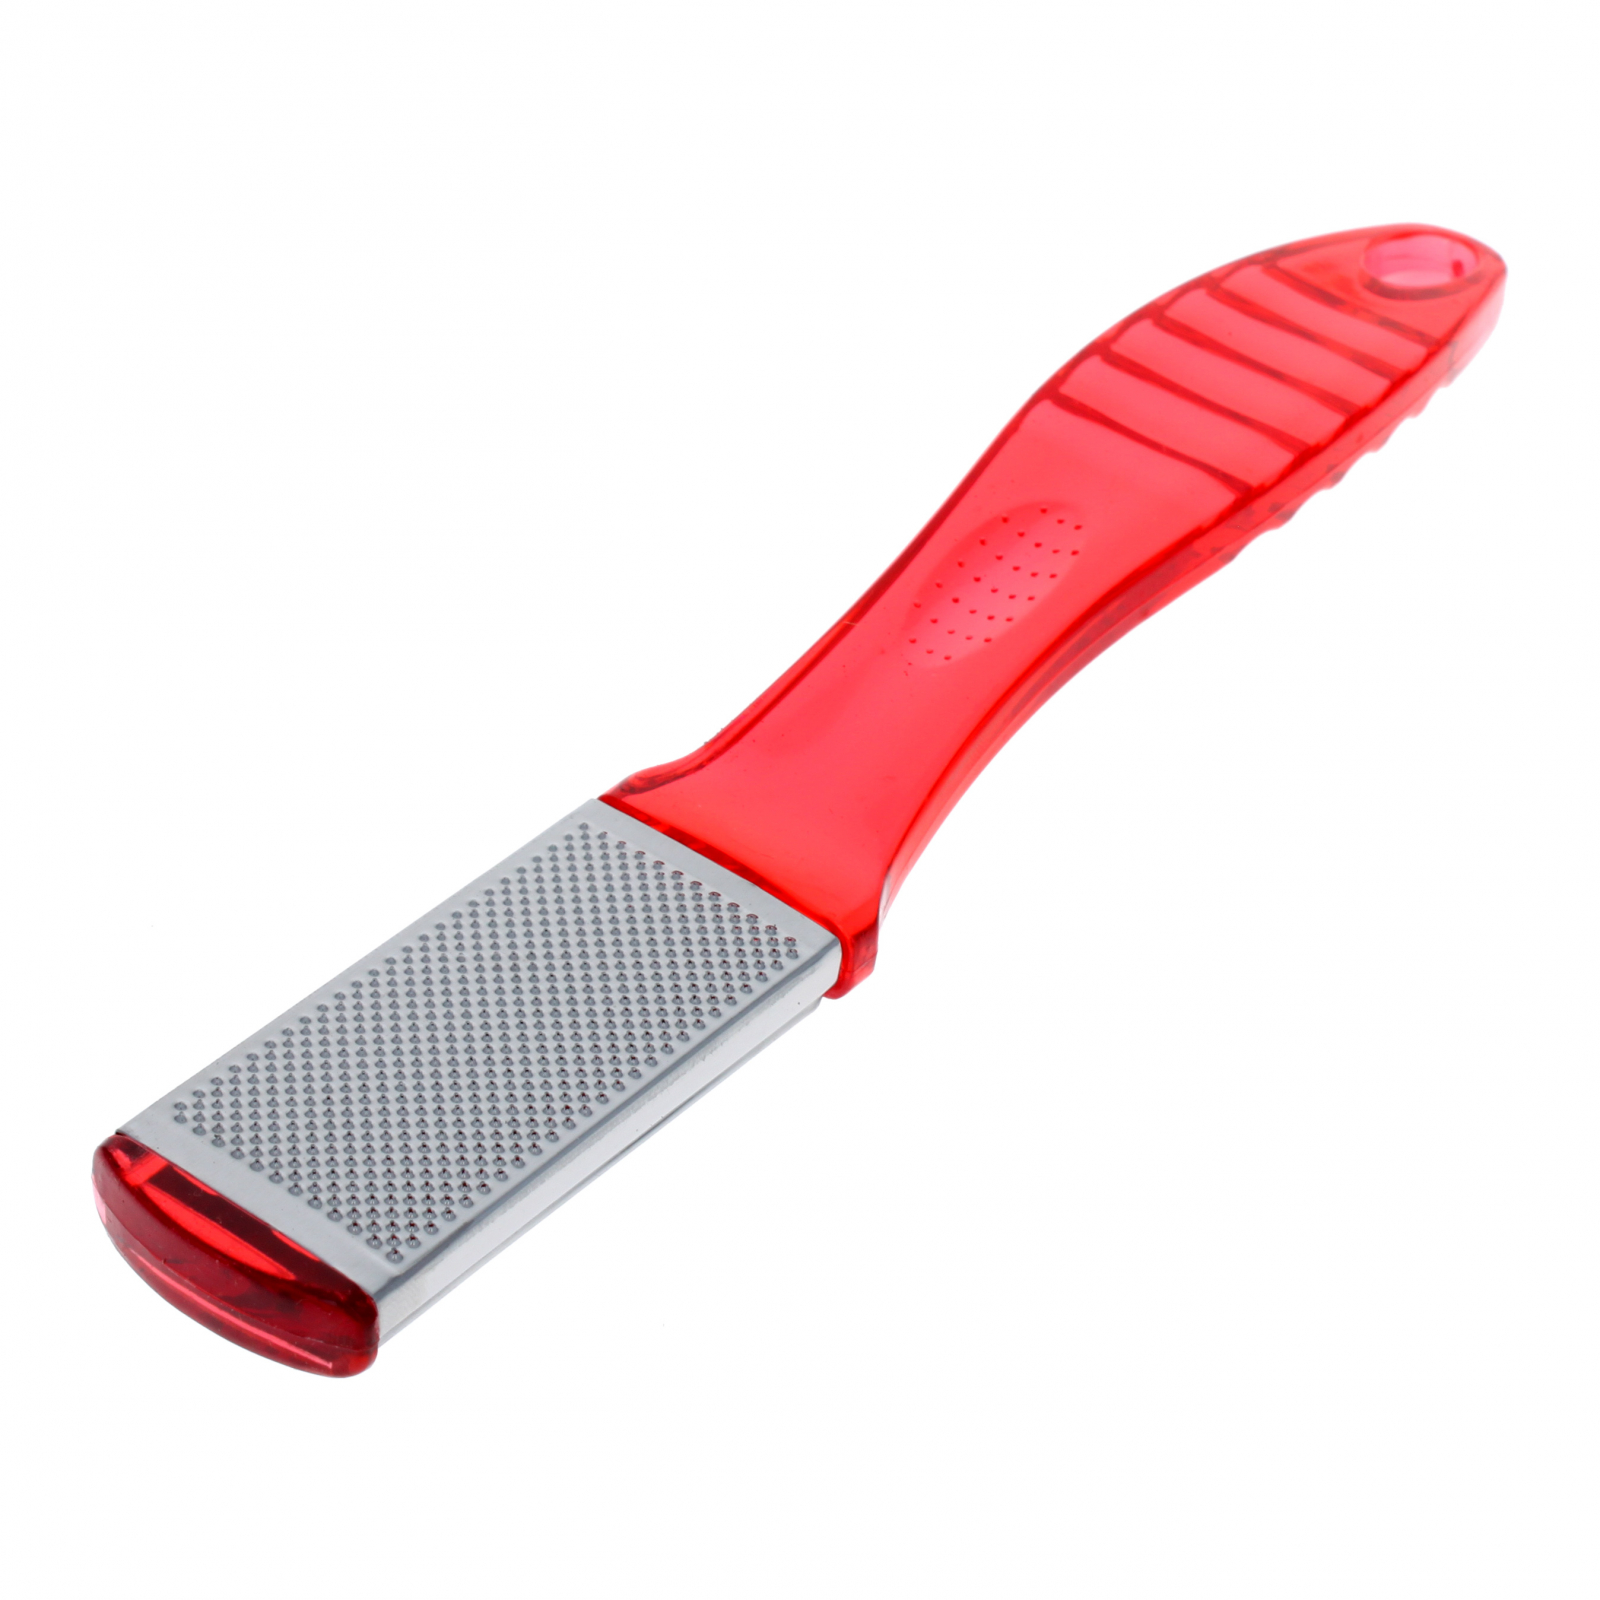 Home Essentials Manicure Pedicure Foot Scrubber File - Red